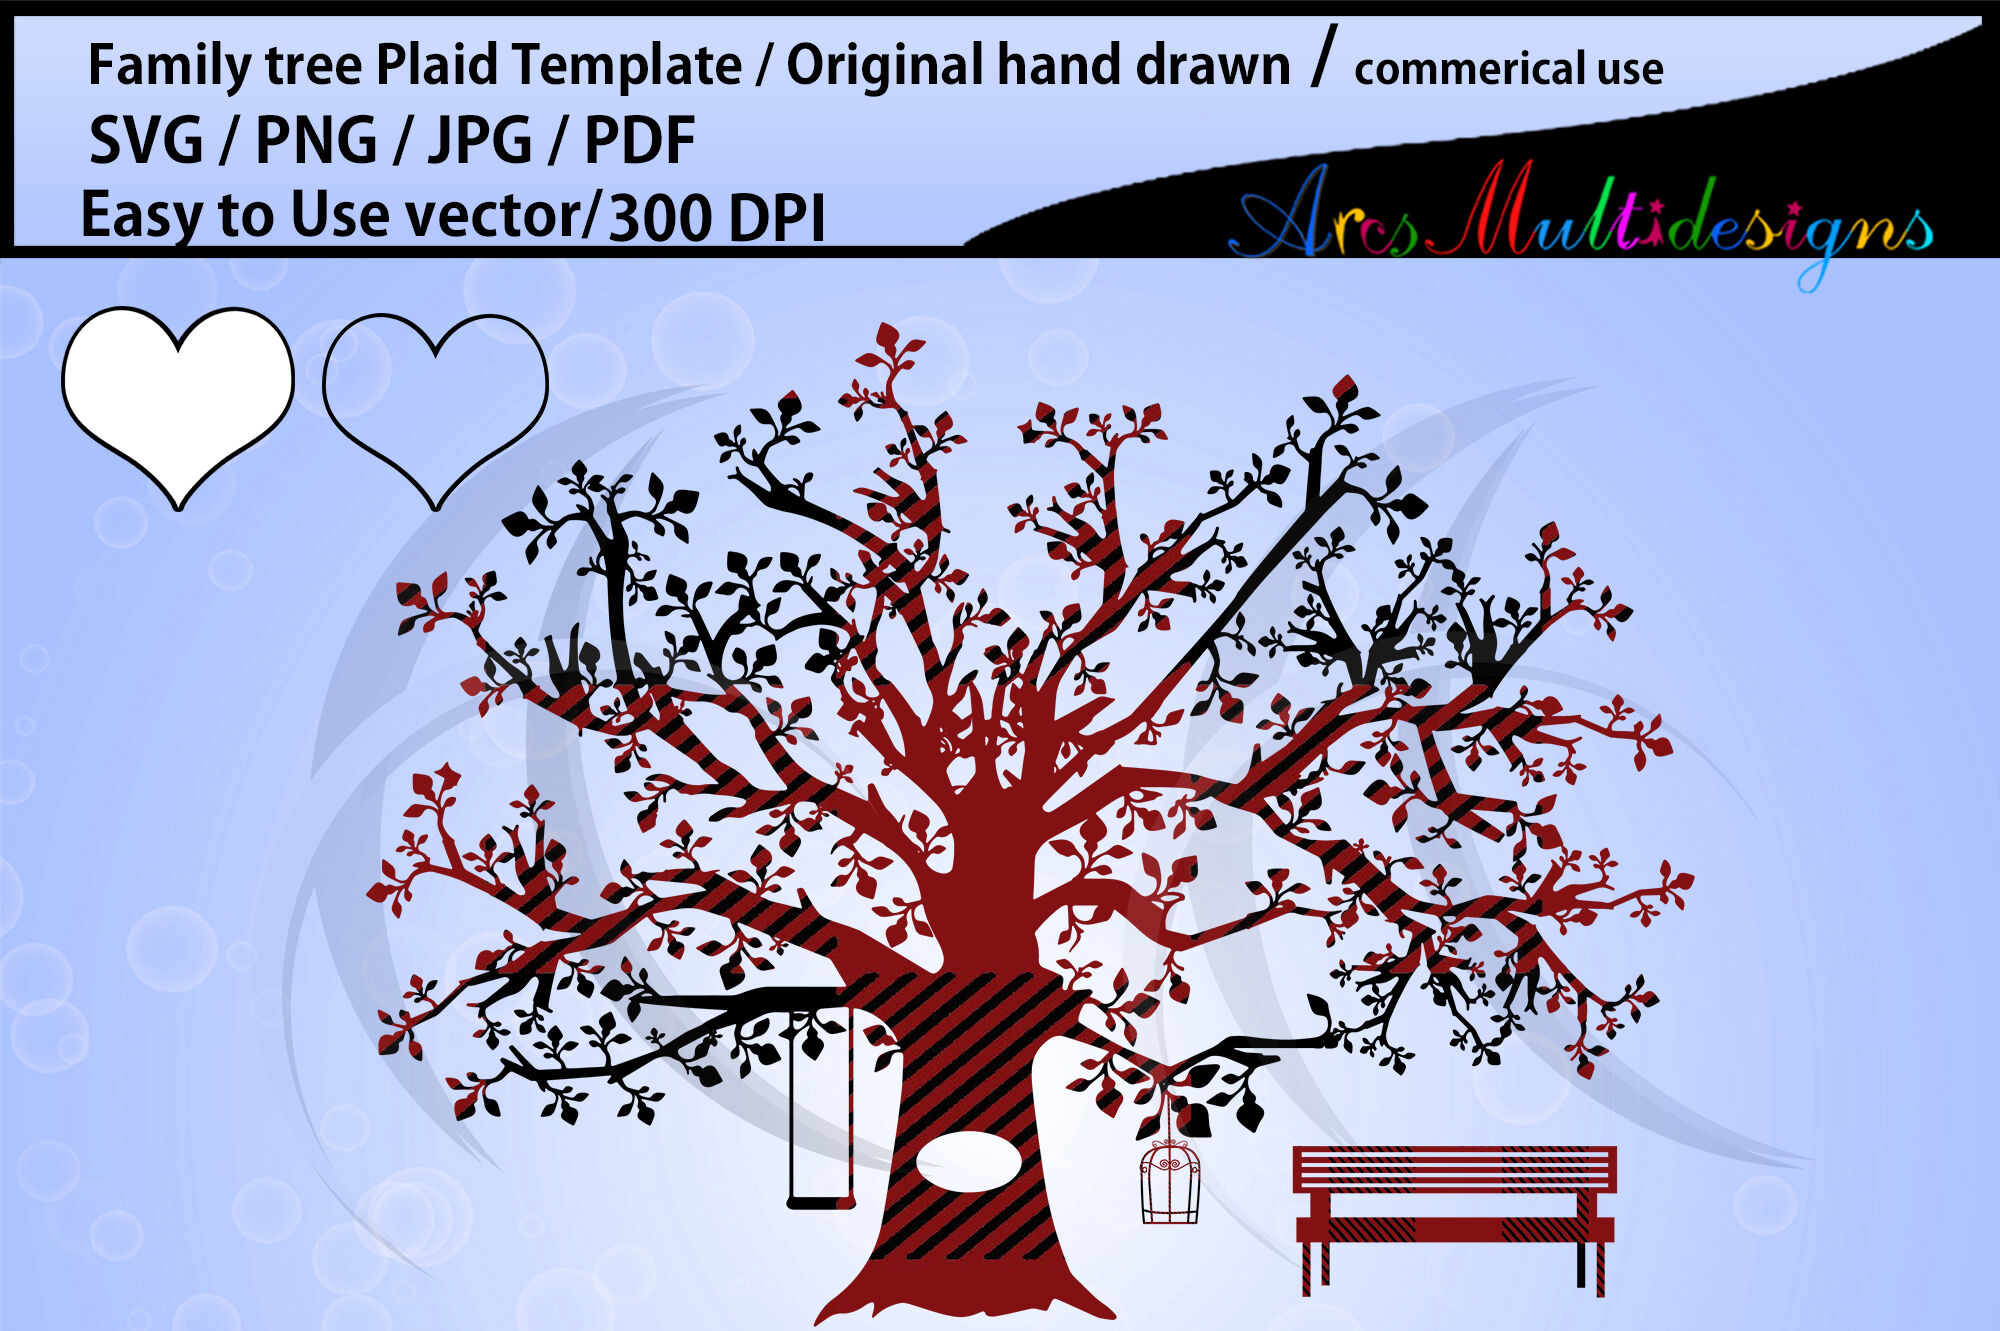 family tree clipart Plaid SVG template, Png, Pdf, Jpg.